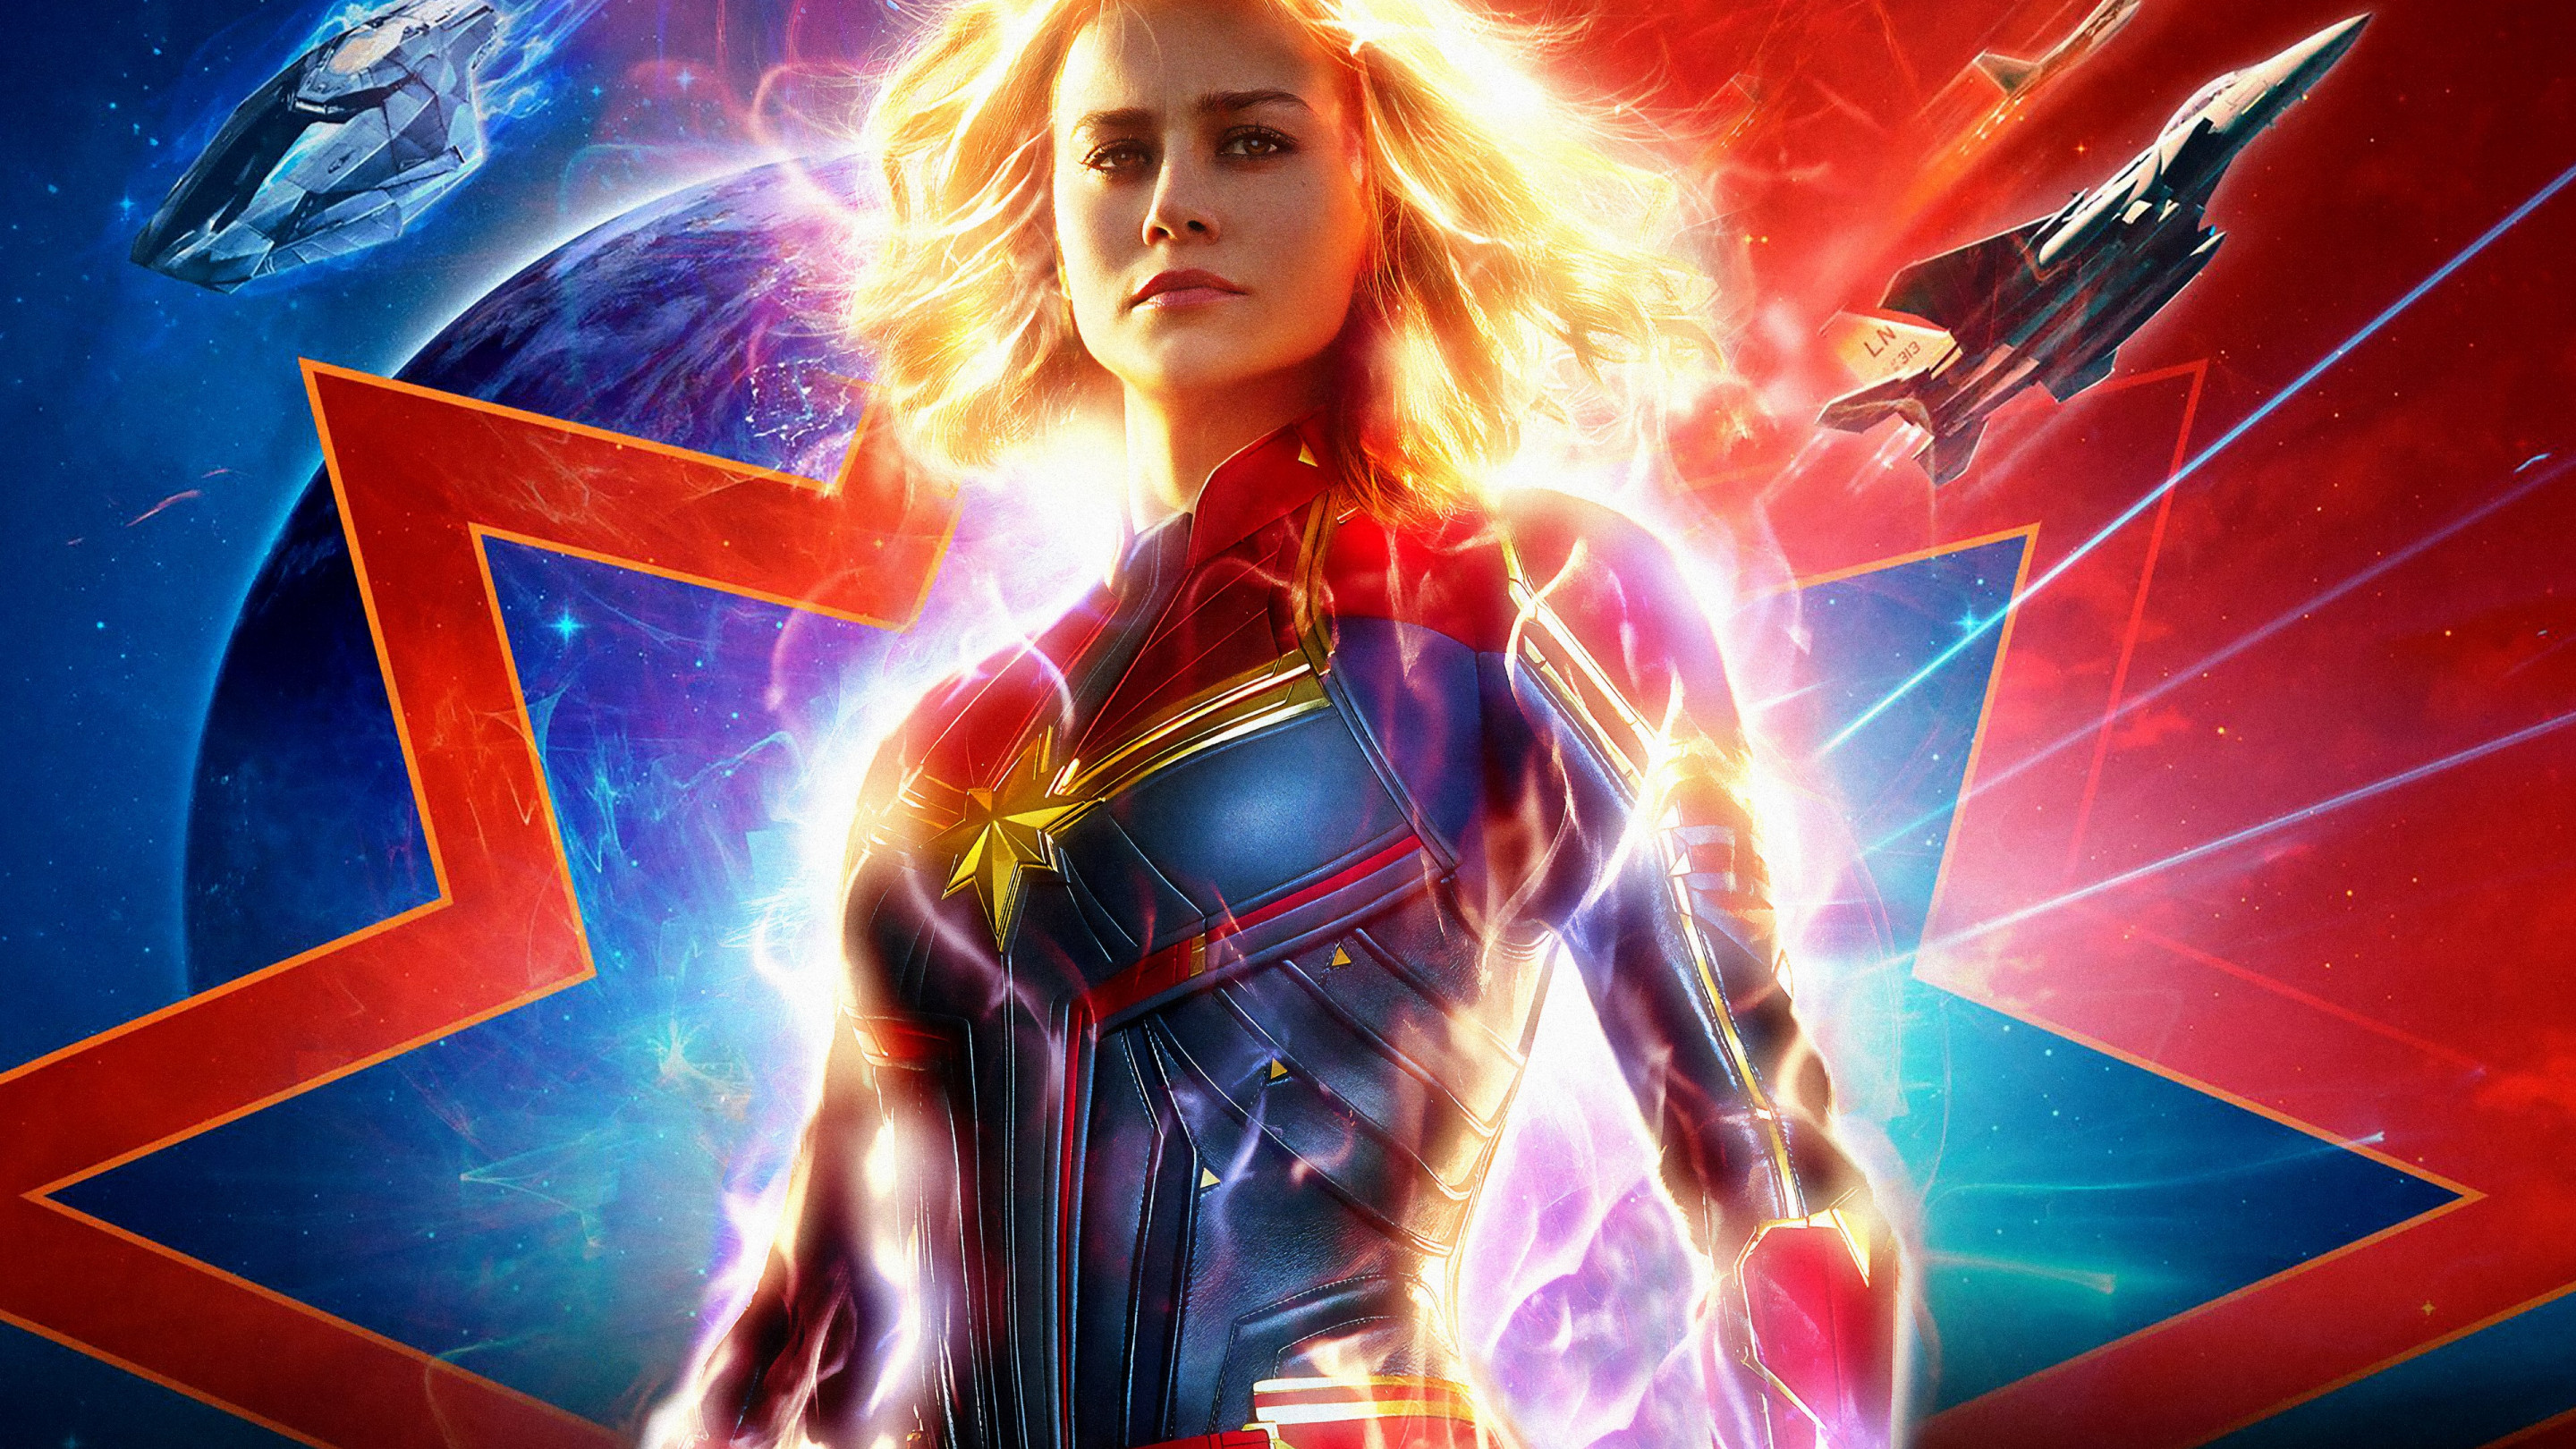 Captain Marvel 2019 wallpaper 2880x1620